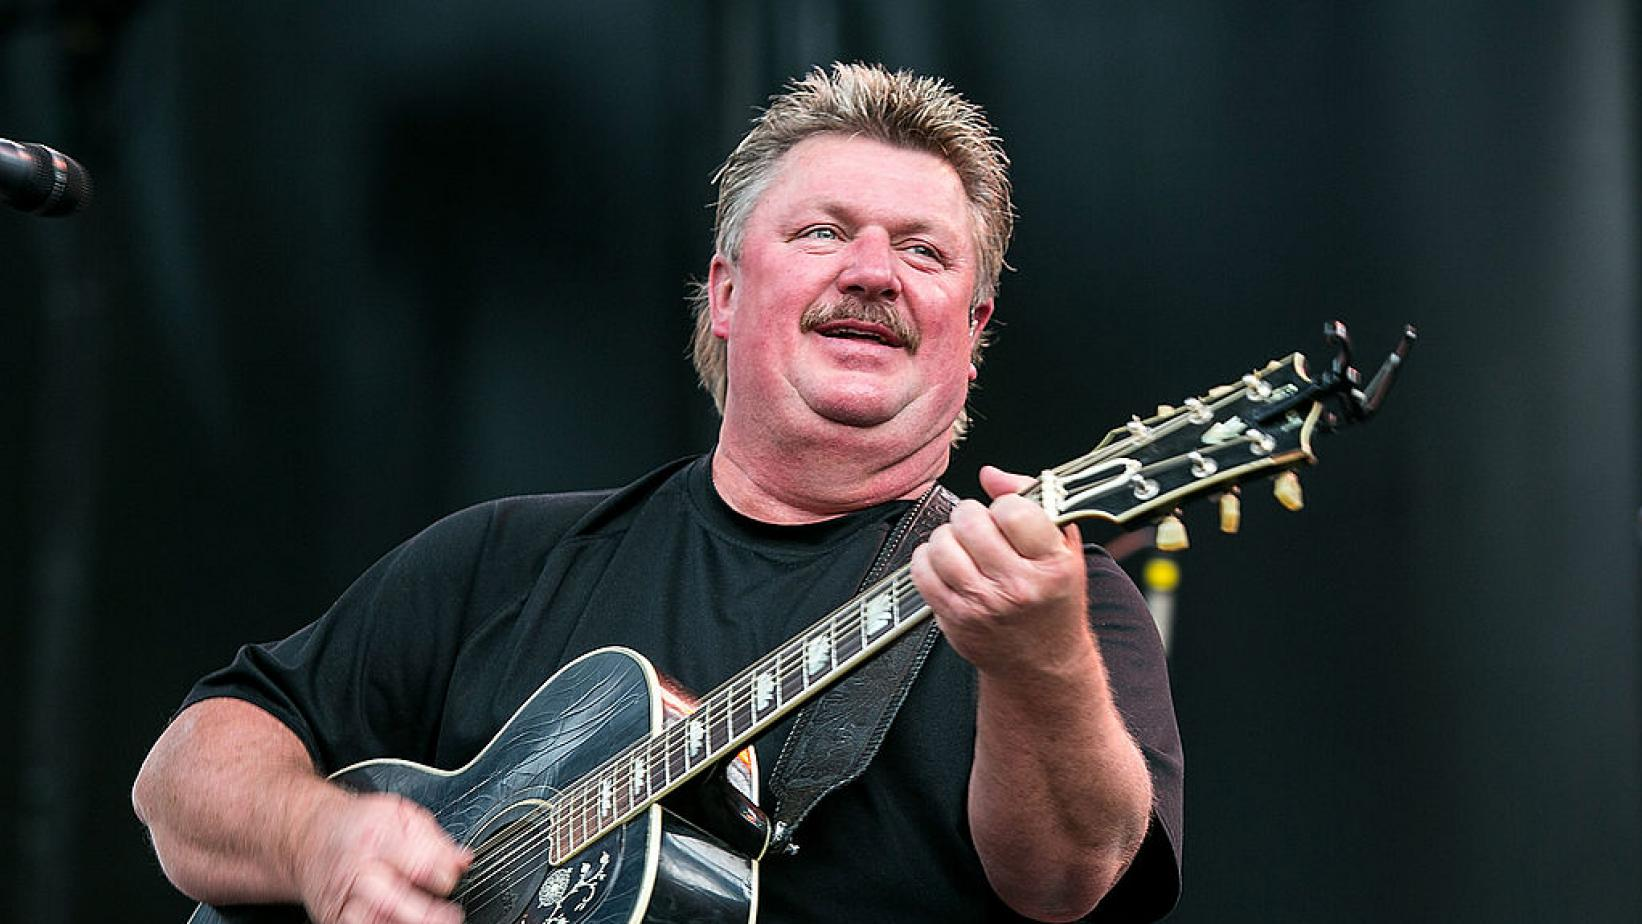 Joe Diffie performs at the Watershed Music Festival 2014